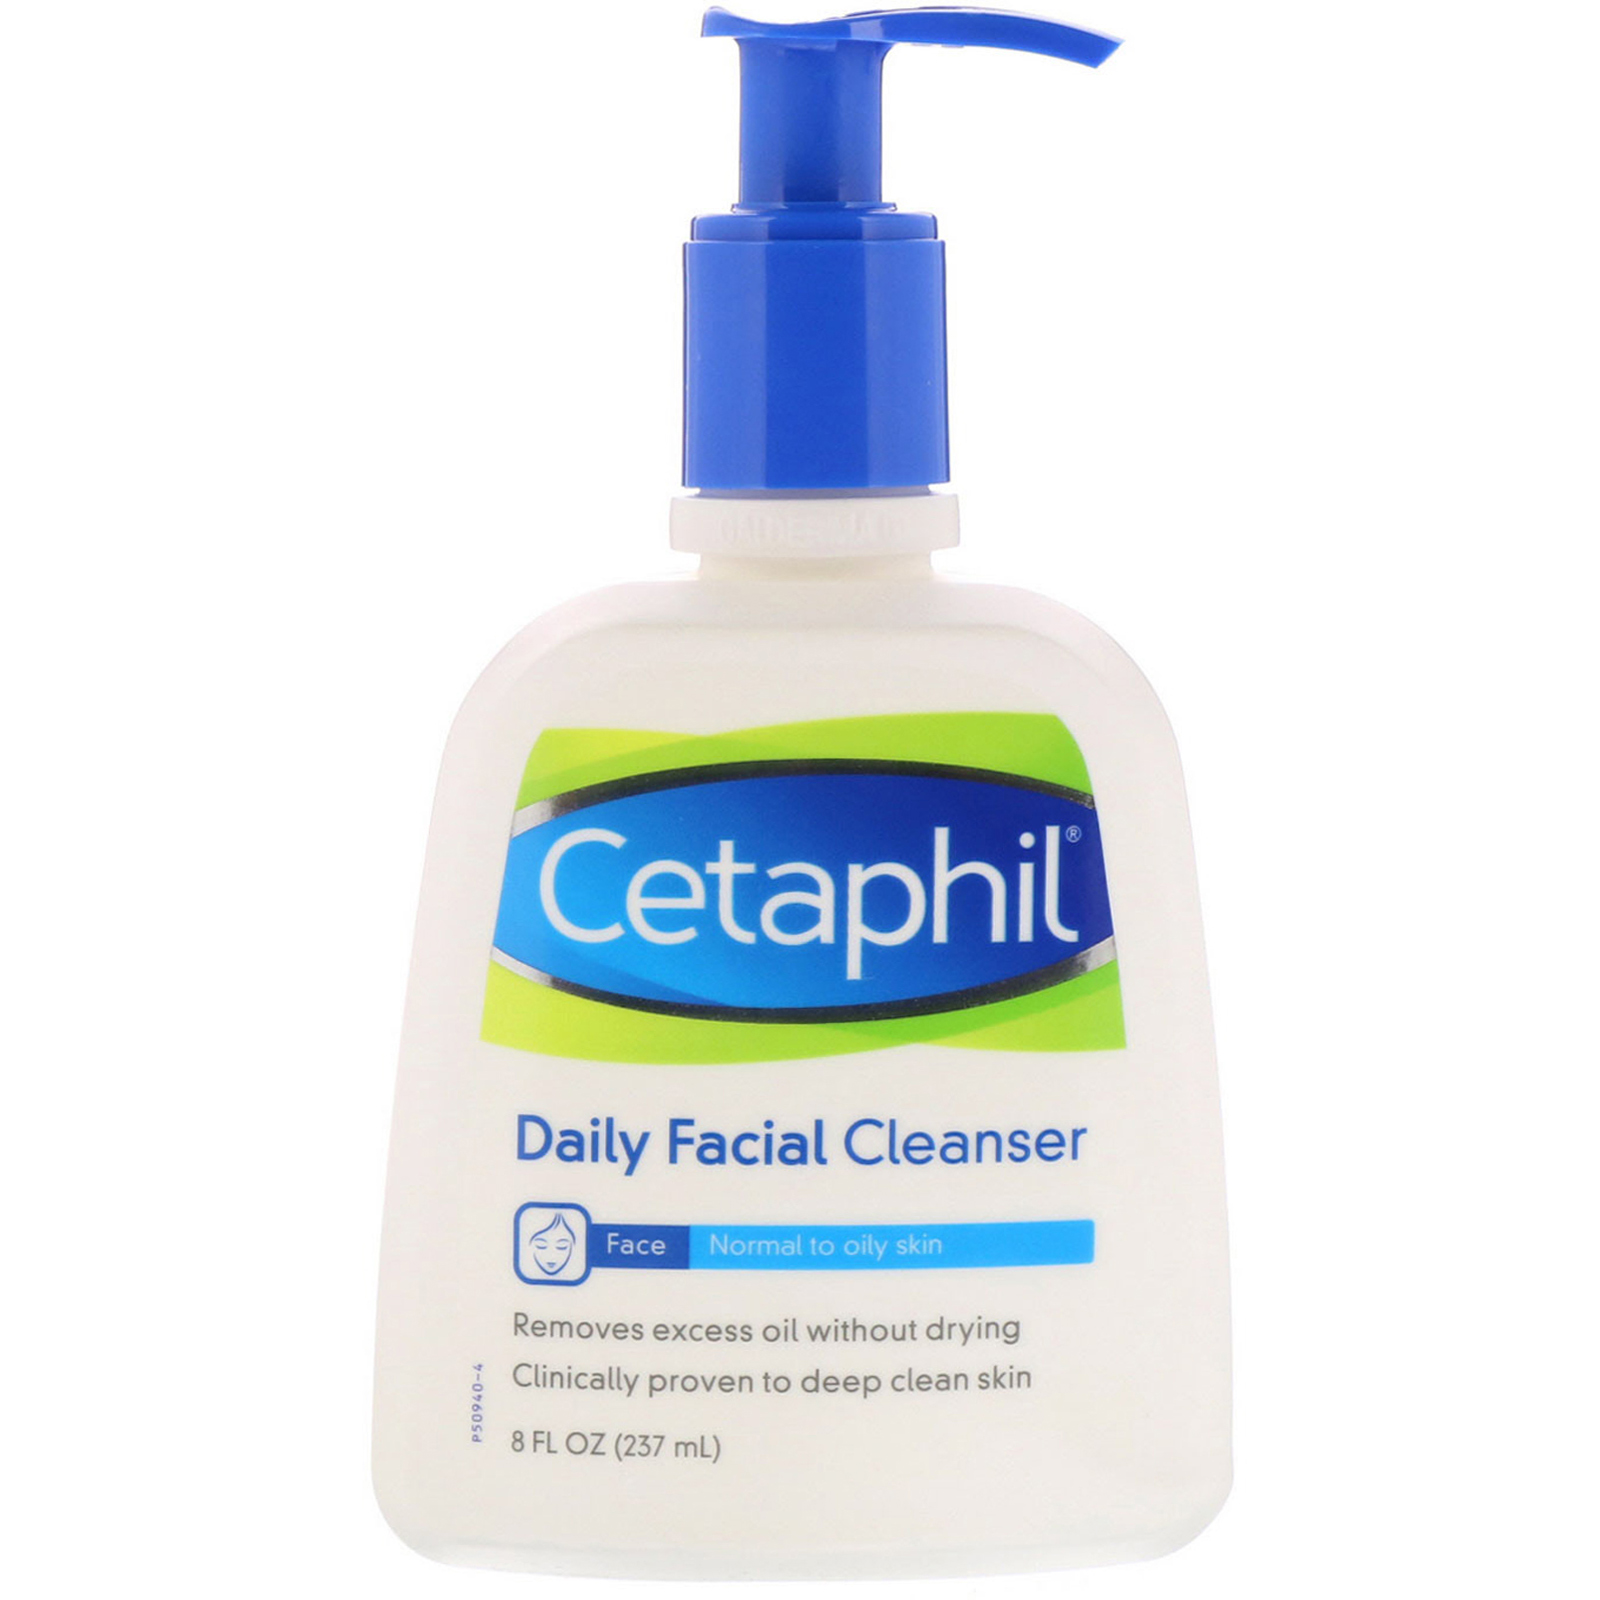 غسول ستافيل للوجه مفتح من اي هيرب Cetaphil Daily Facial Cleanser الغسولافضل غسول طبي للوجه